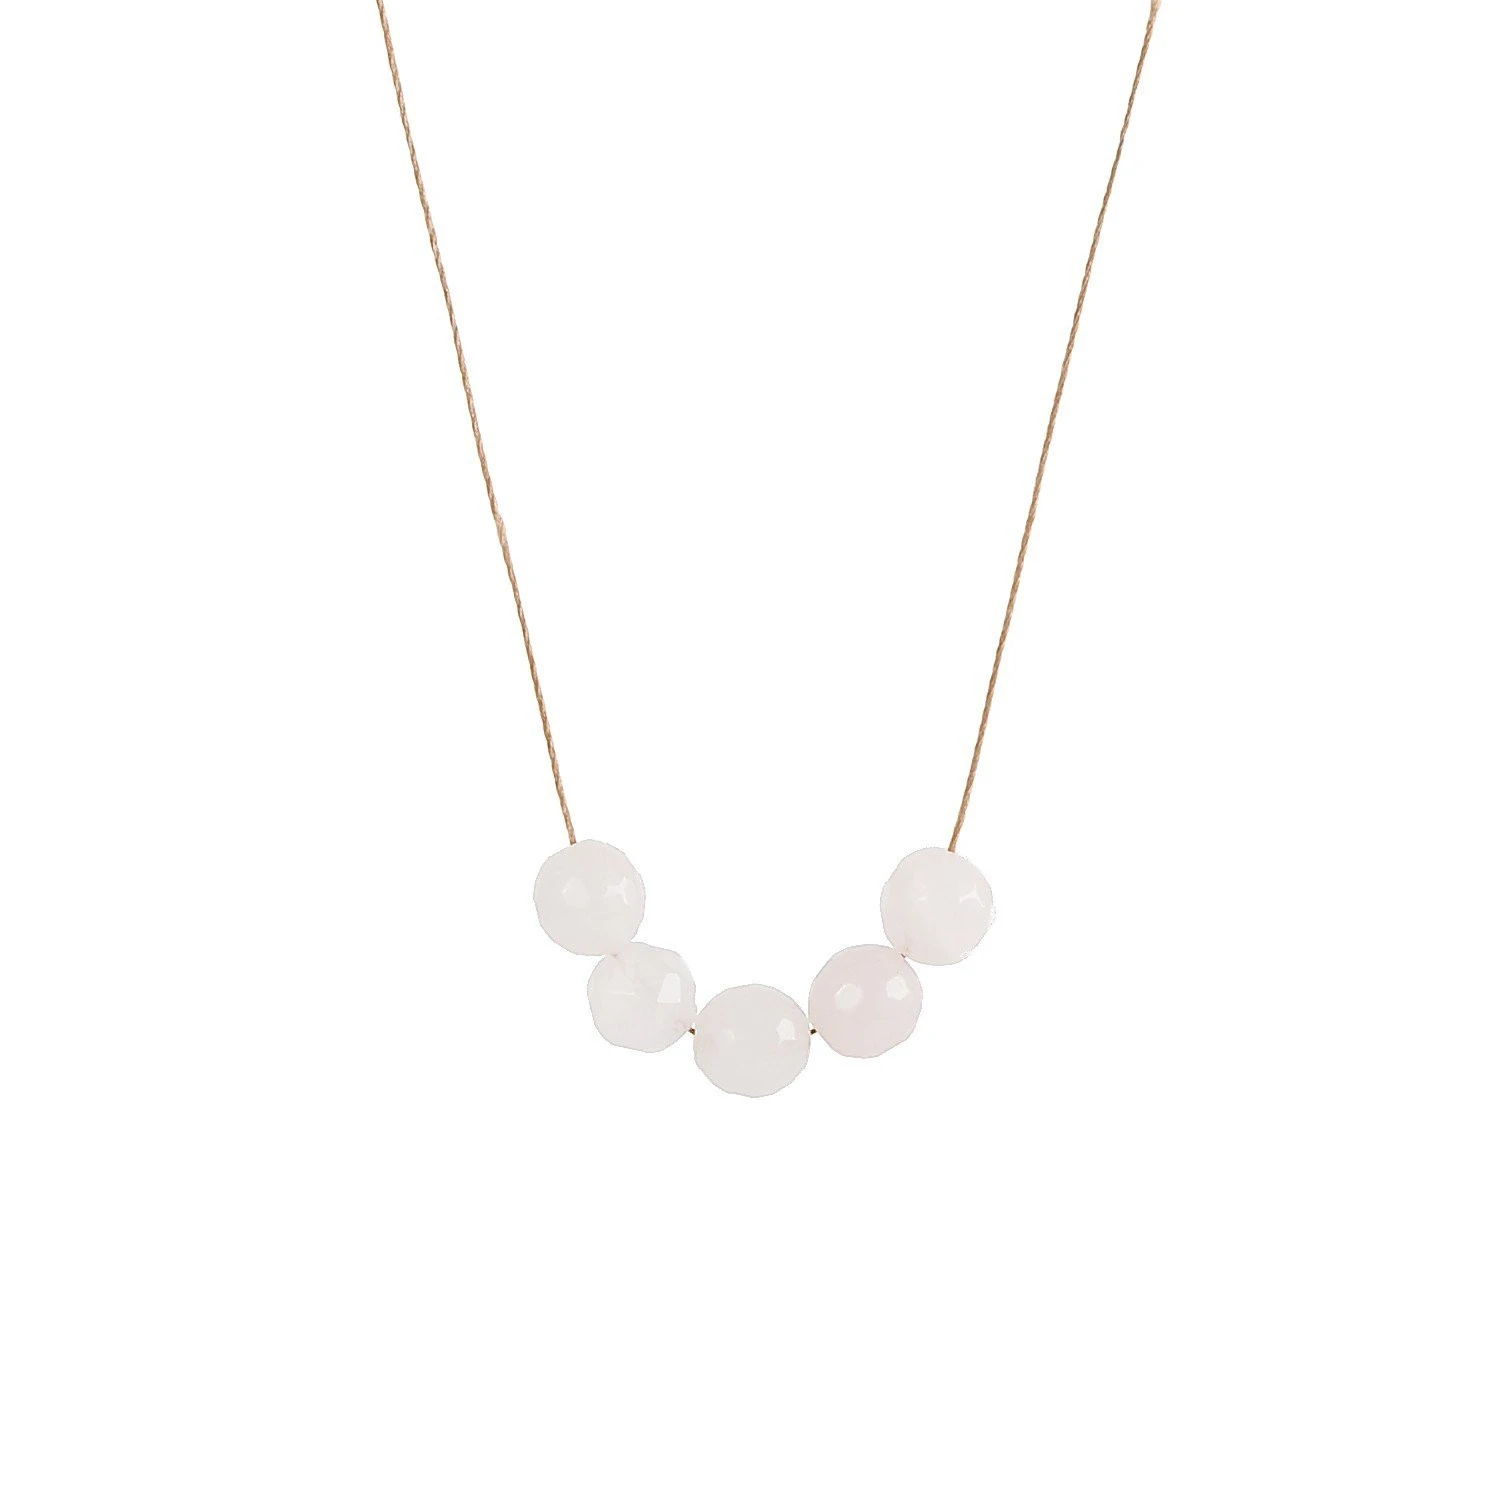 Image of Image of Love Intention Necklace